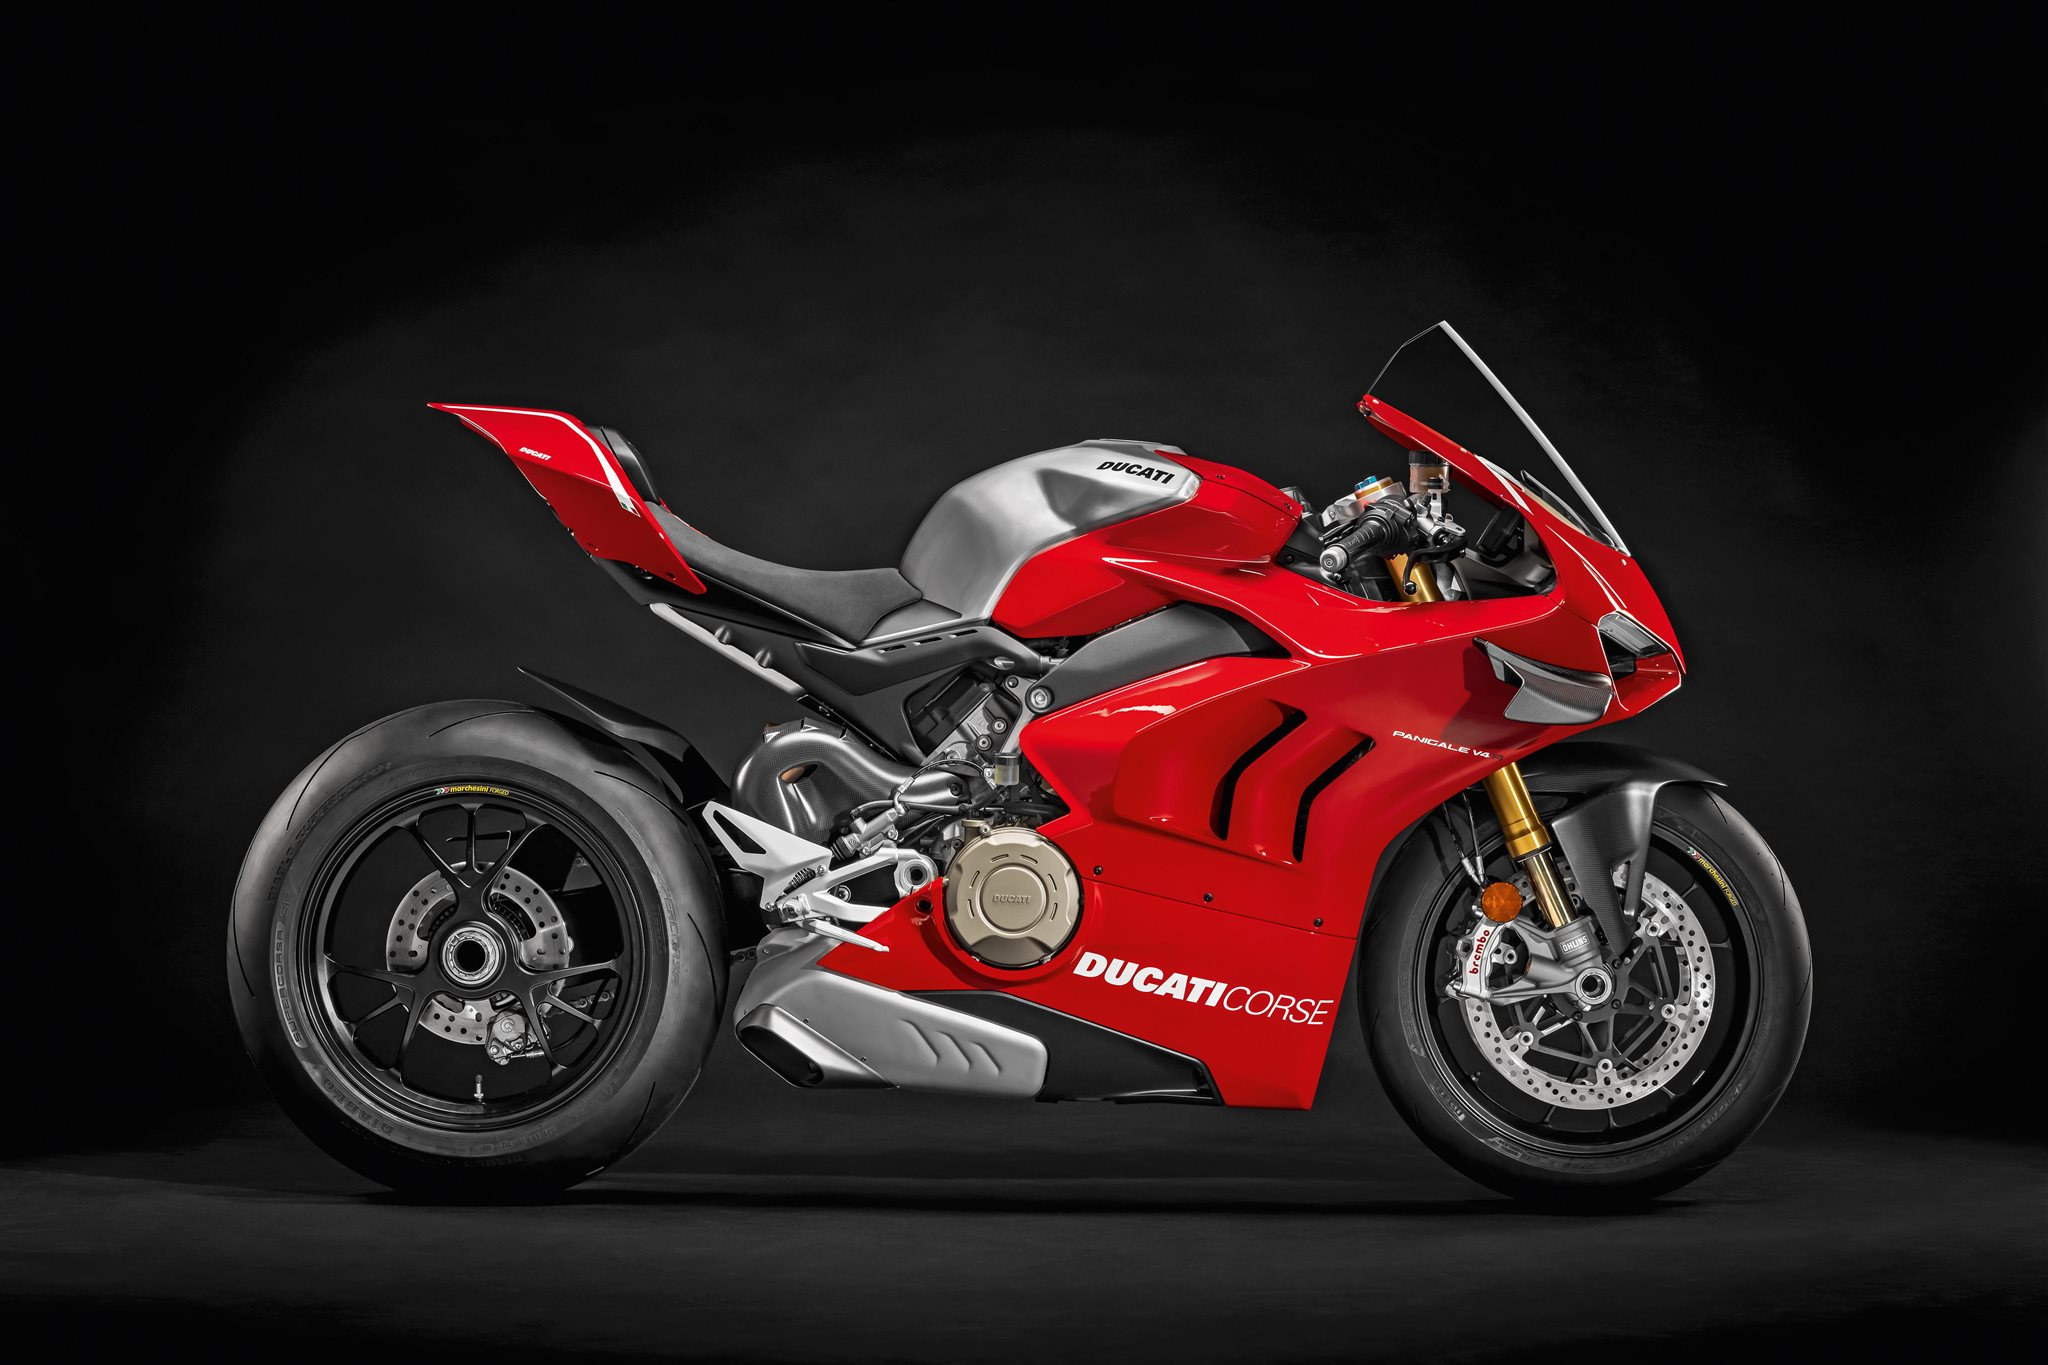 ducati panigale v4 r 2019 modellnews. Black Bedroom Furniture Sets. Home Design Ideas